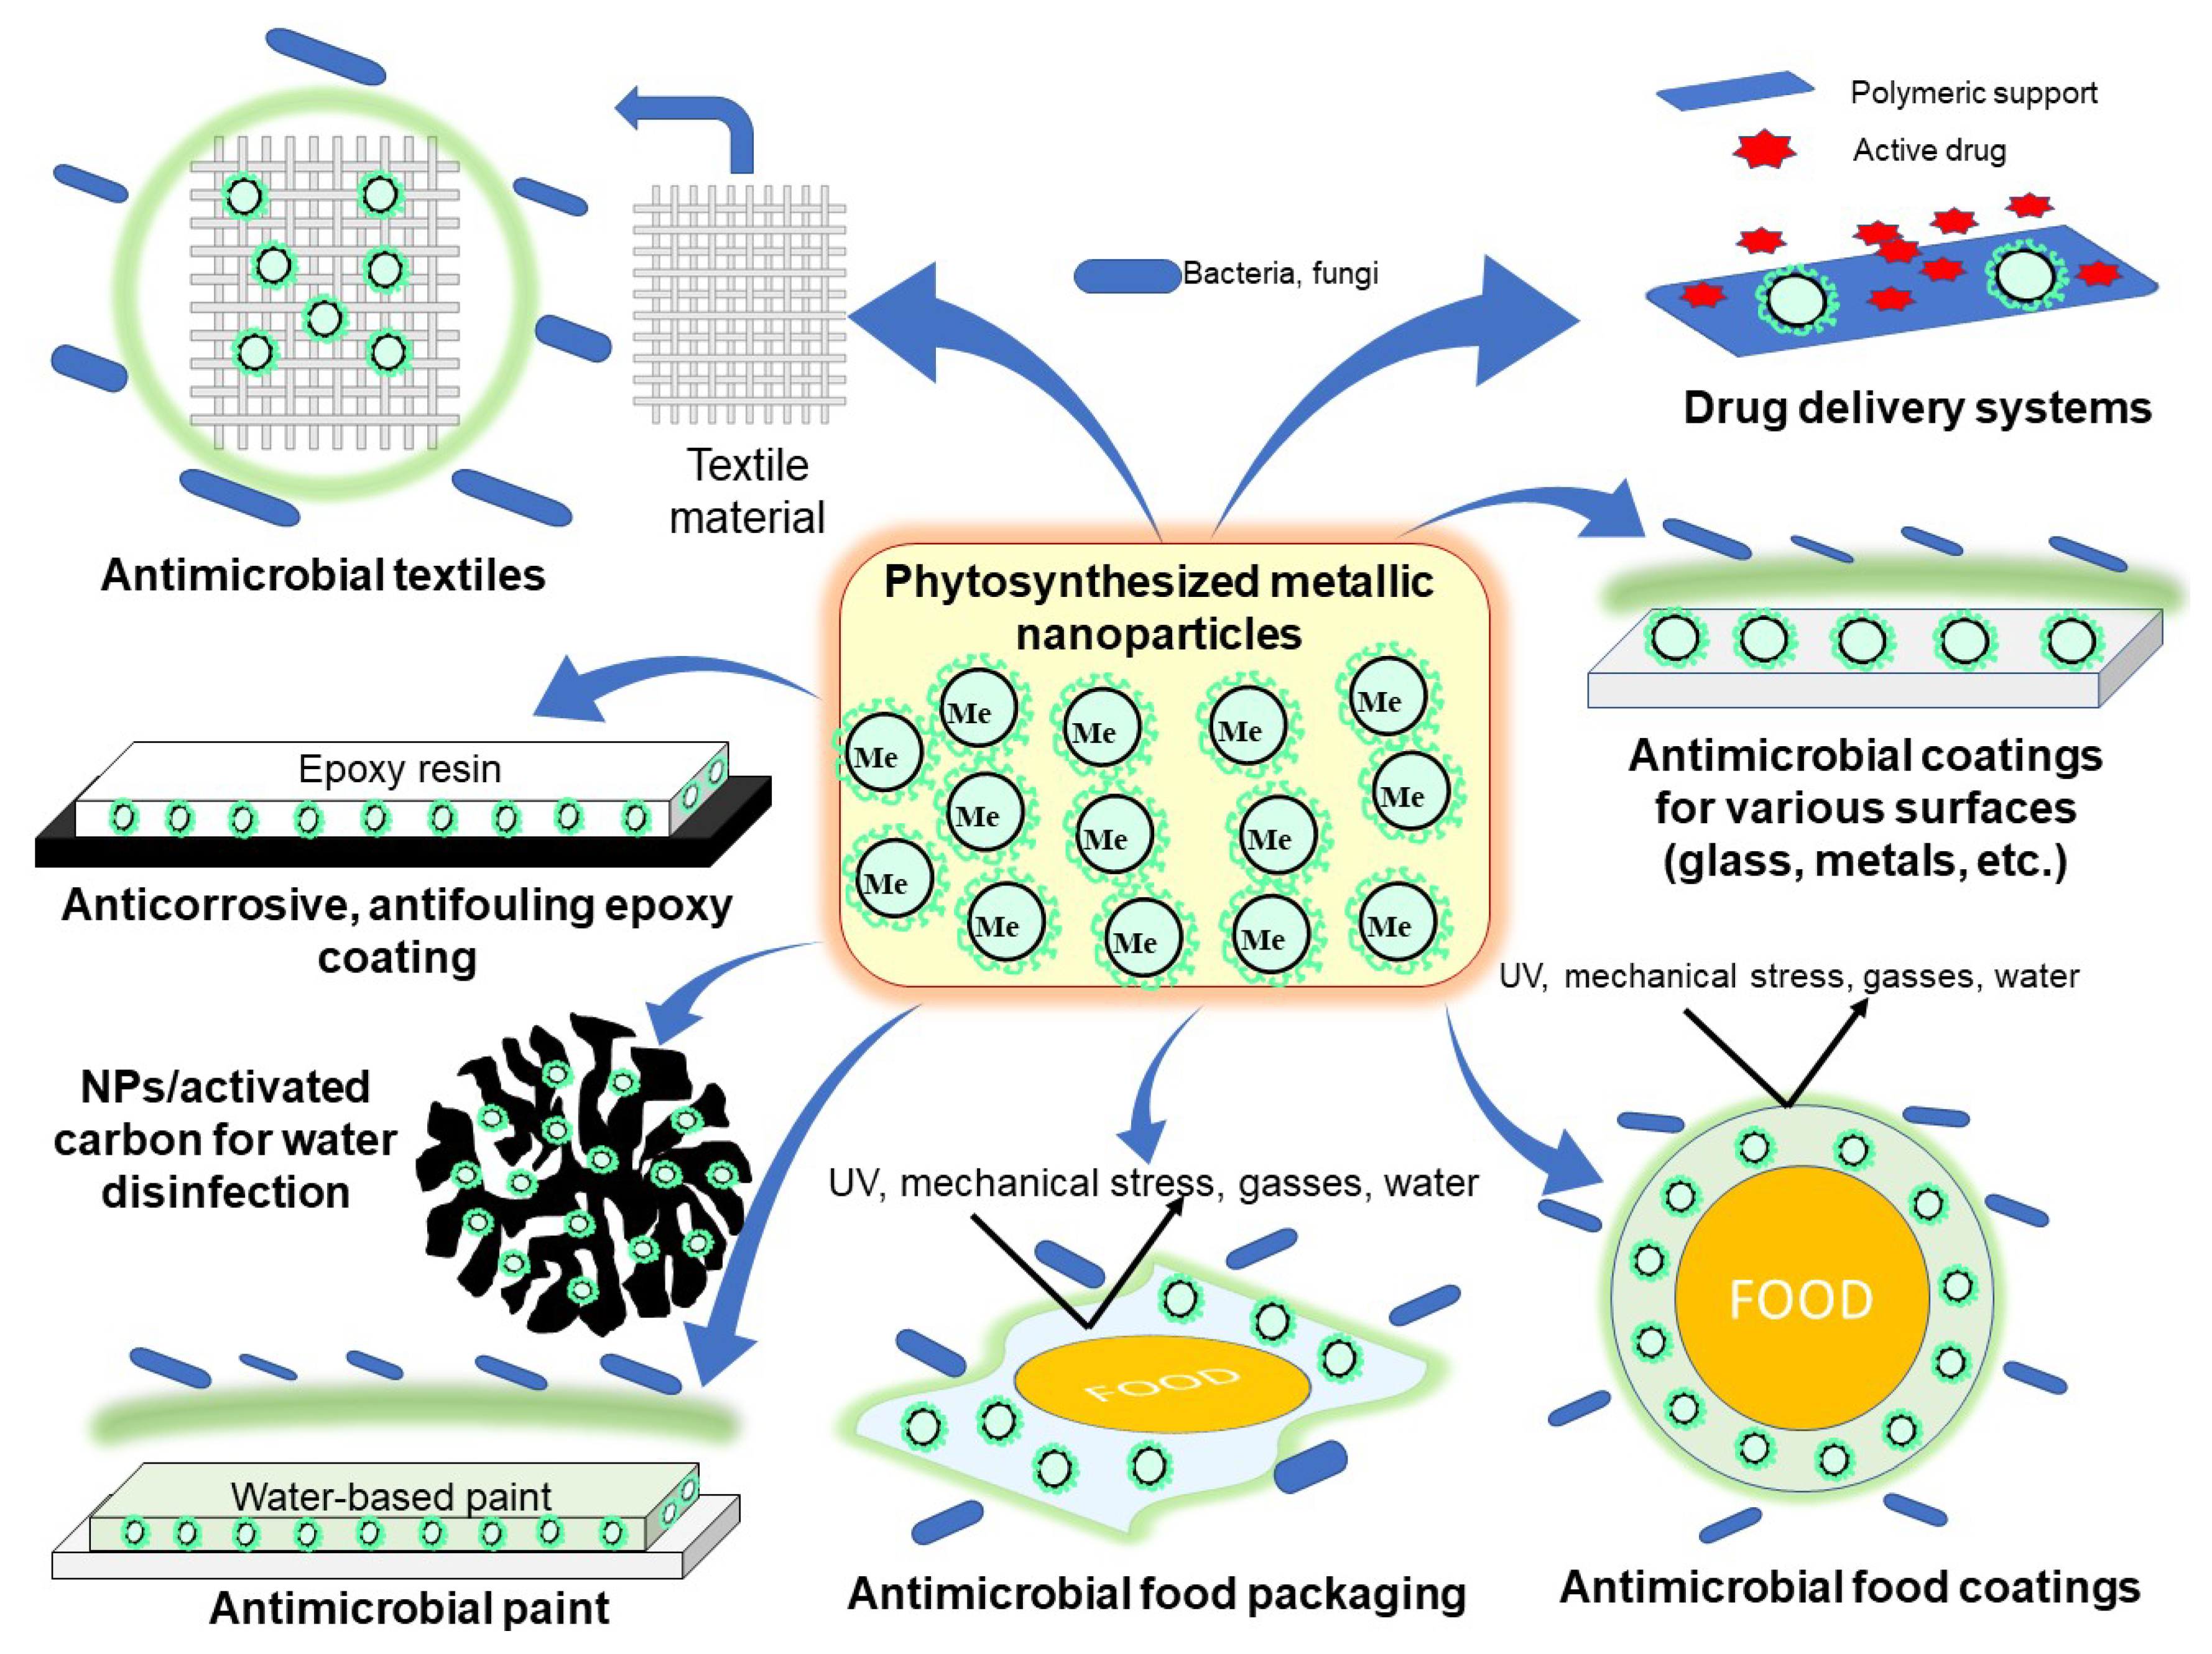 Coatings | Free Full-Text | A Short Overview of Recent Developments on Antimicrobial  Coatings Based on Phytosynthesized Metal Nanoparticles | HTML